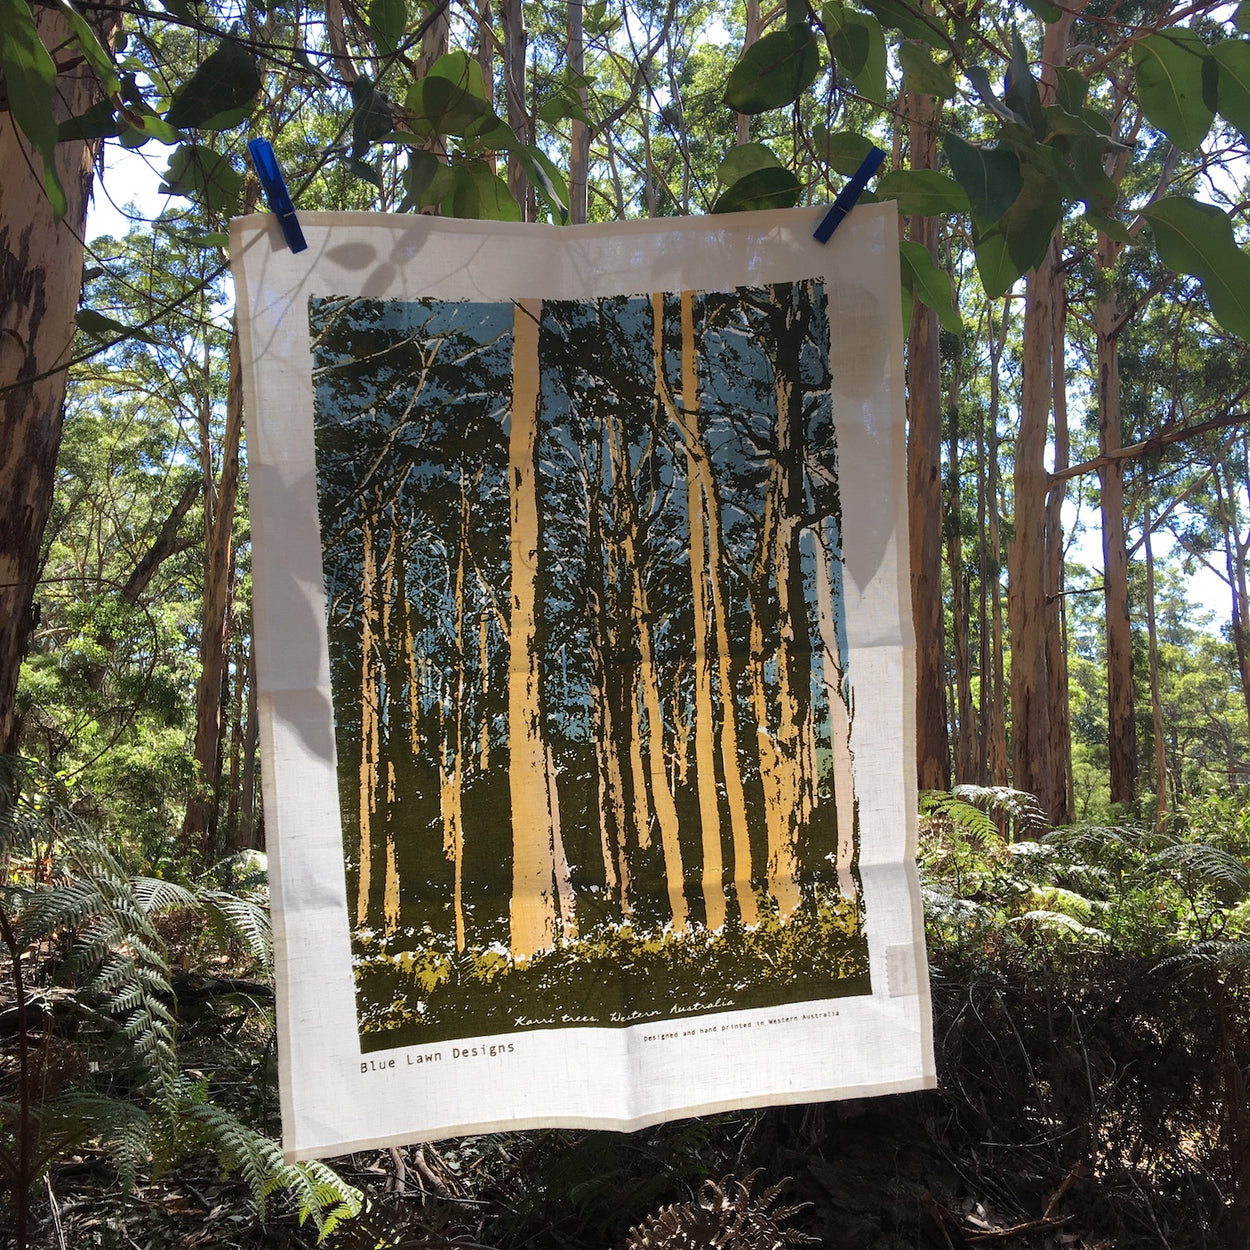 Photograph of a karri trees tea towel hanging in a karri forest.